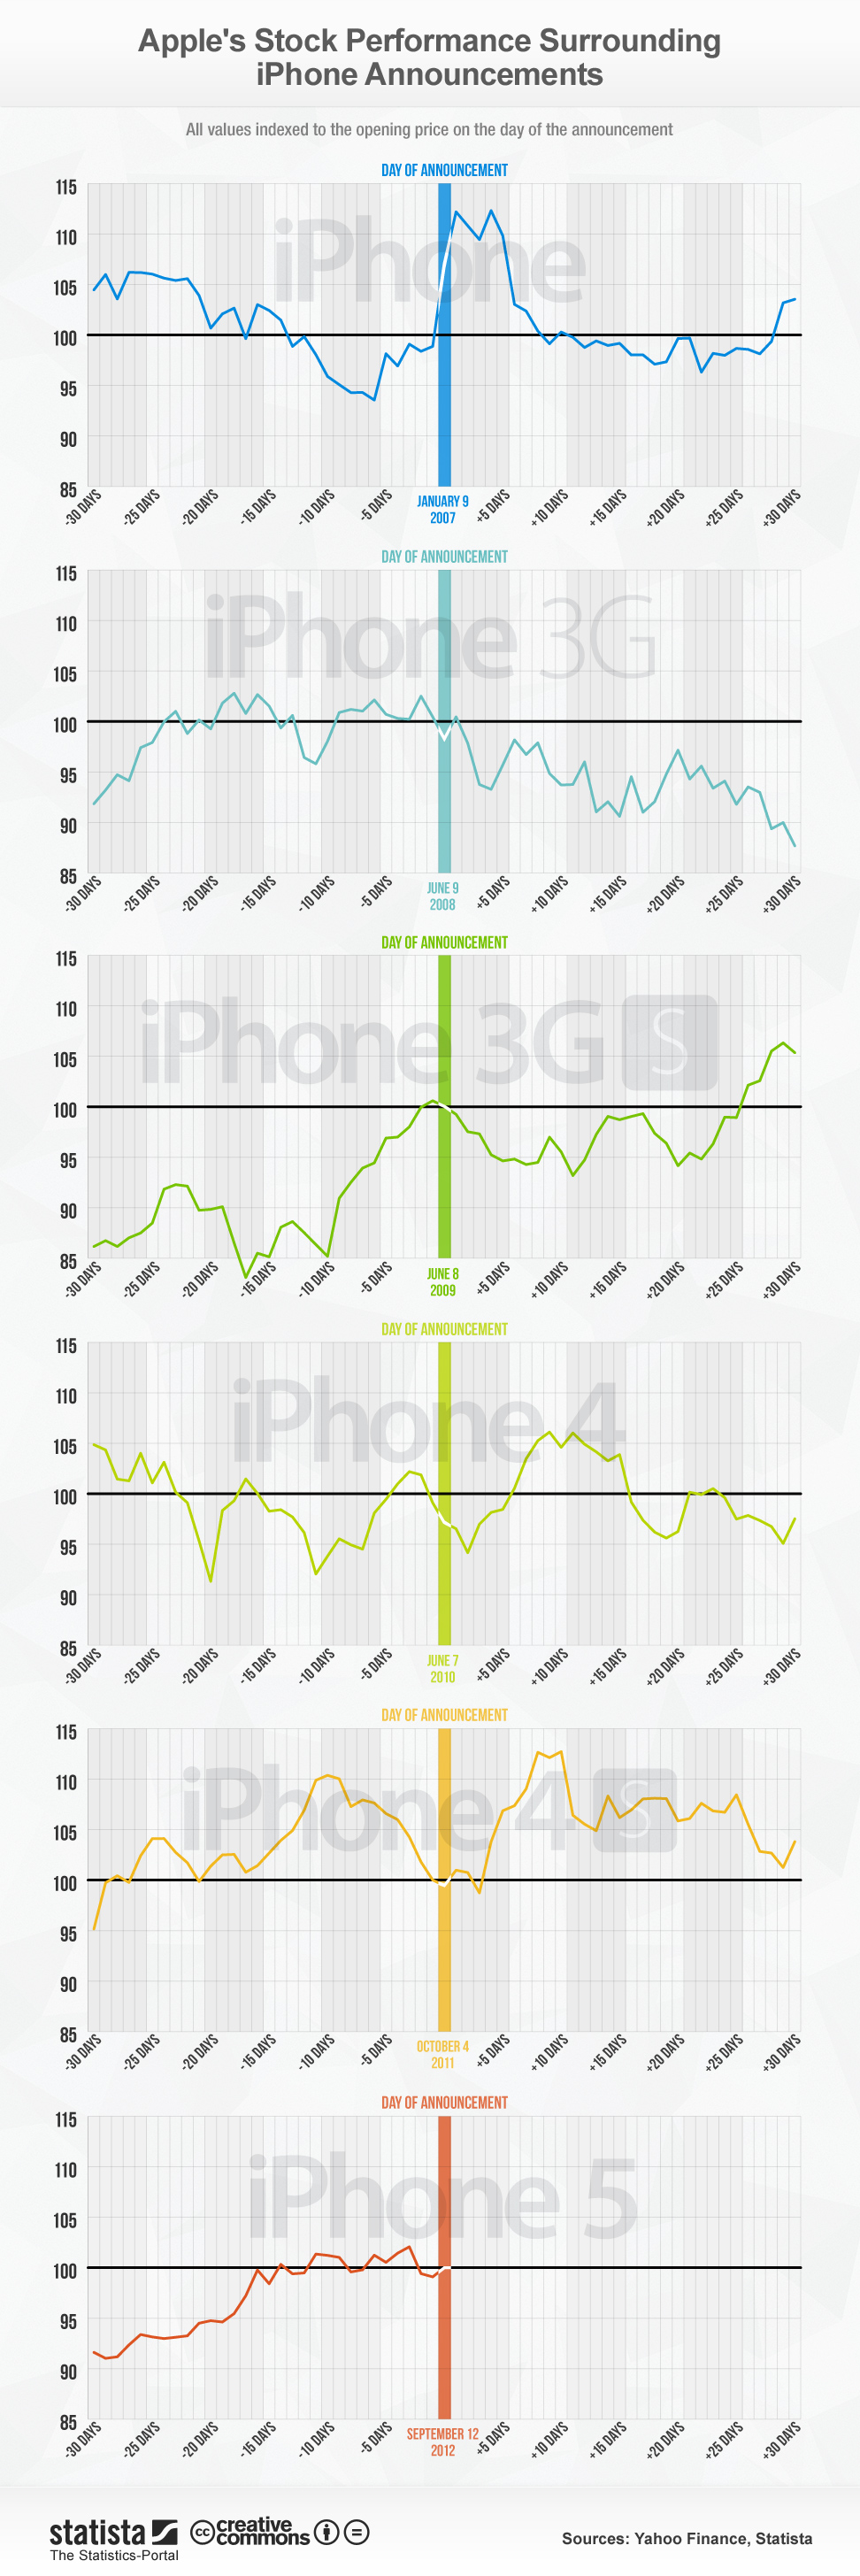 how-iphone-announcements-affect-apple-stock_5050fe97ce995